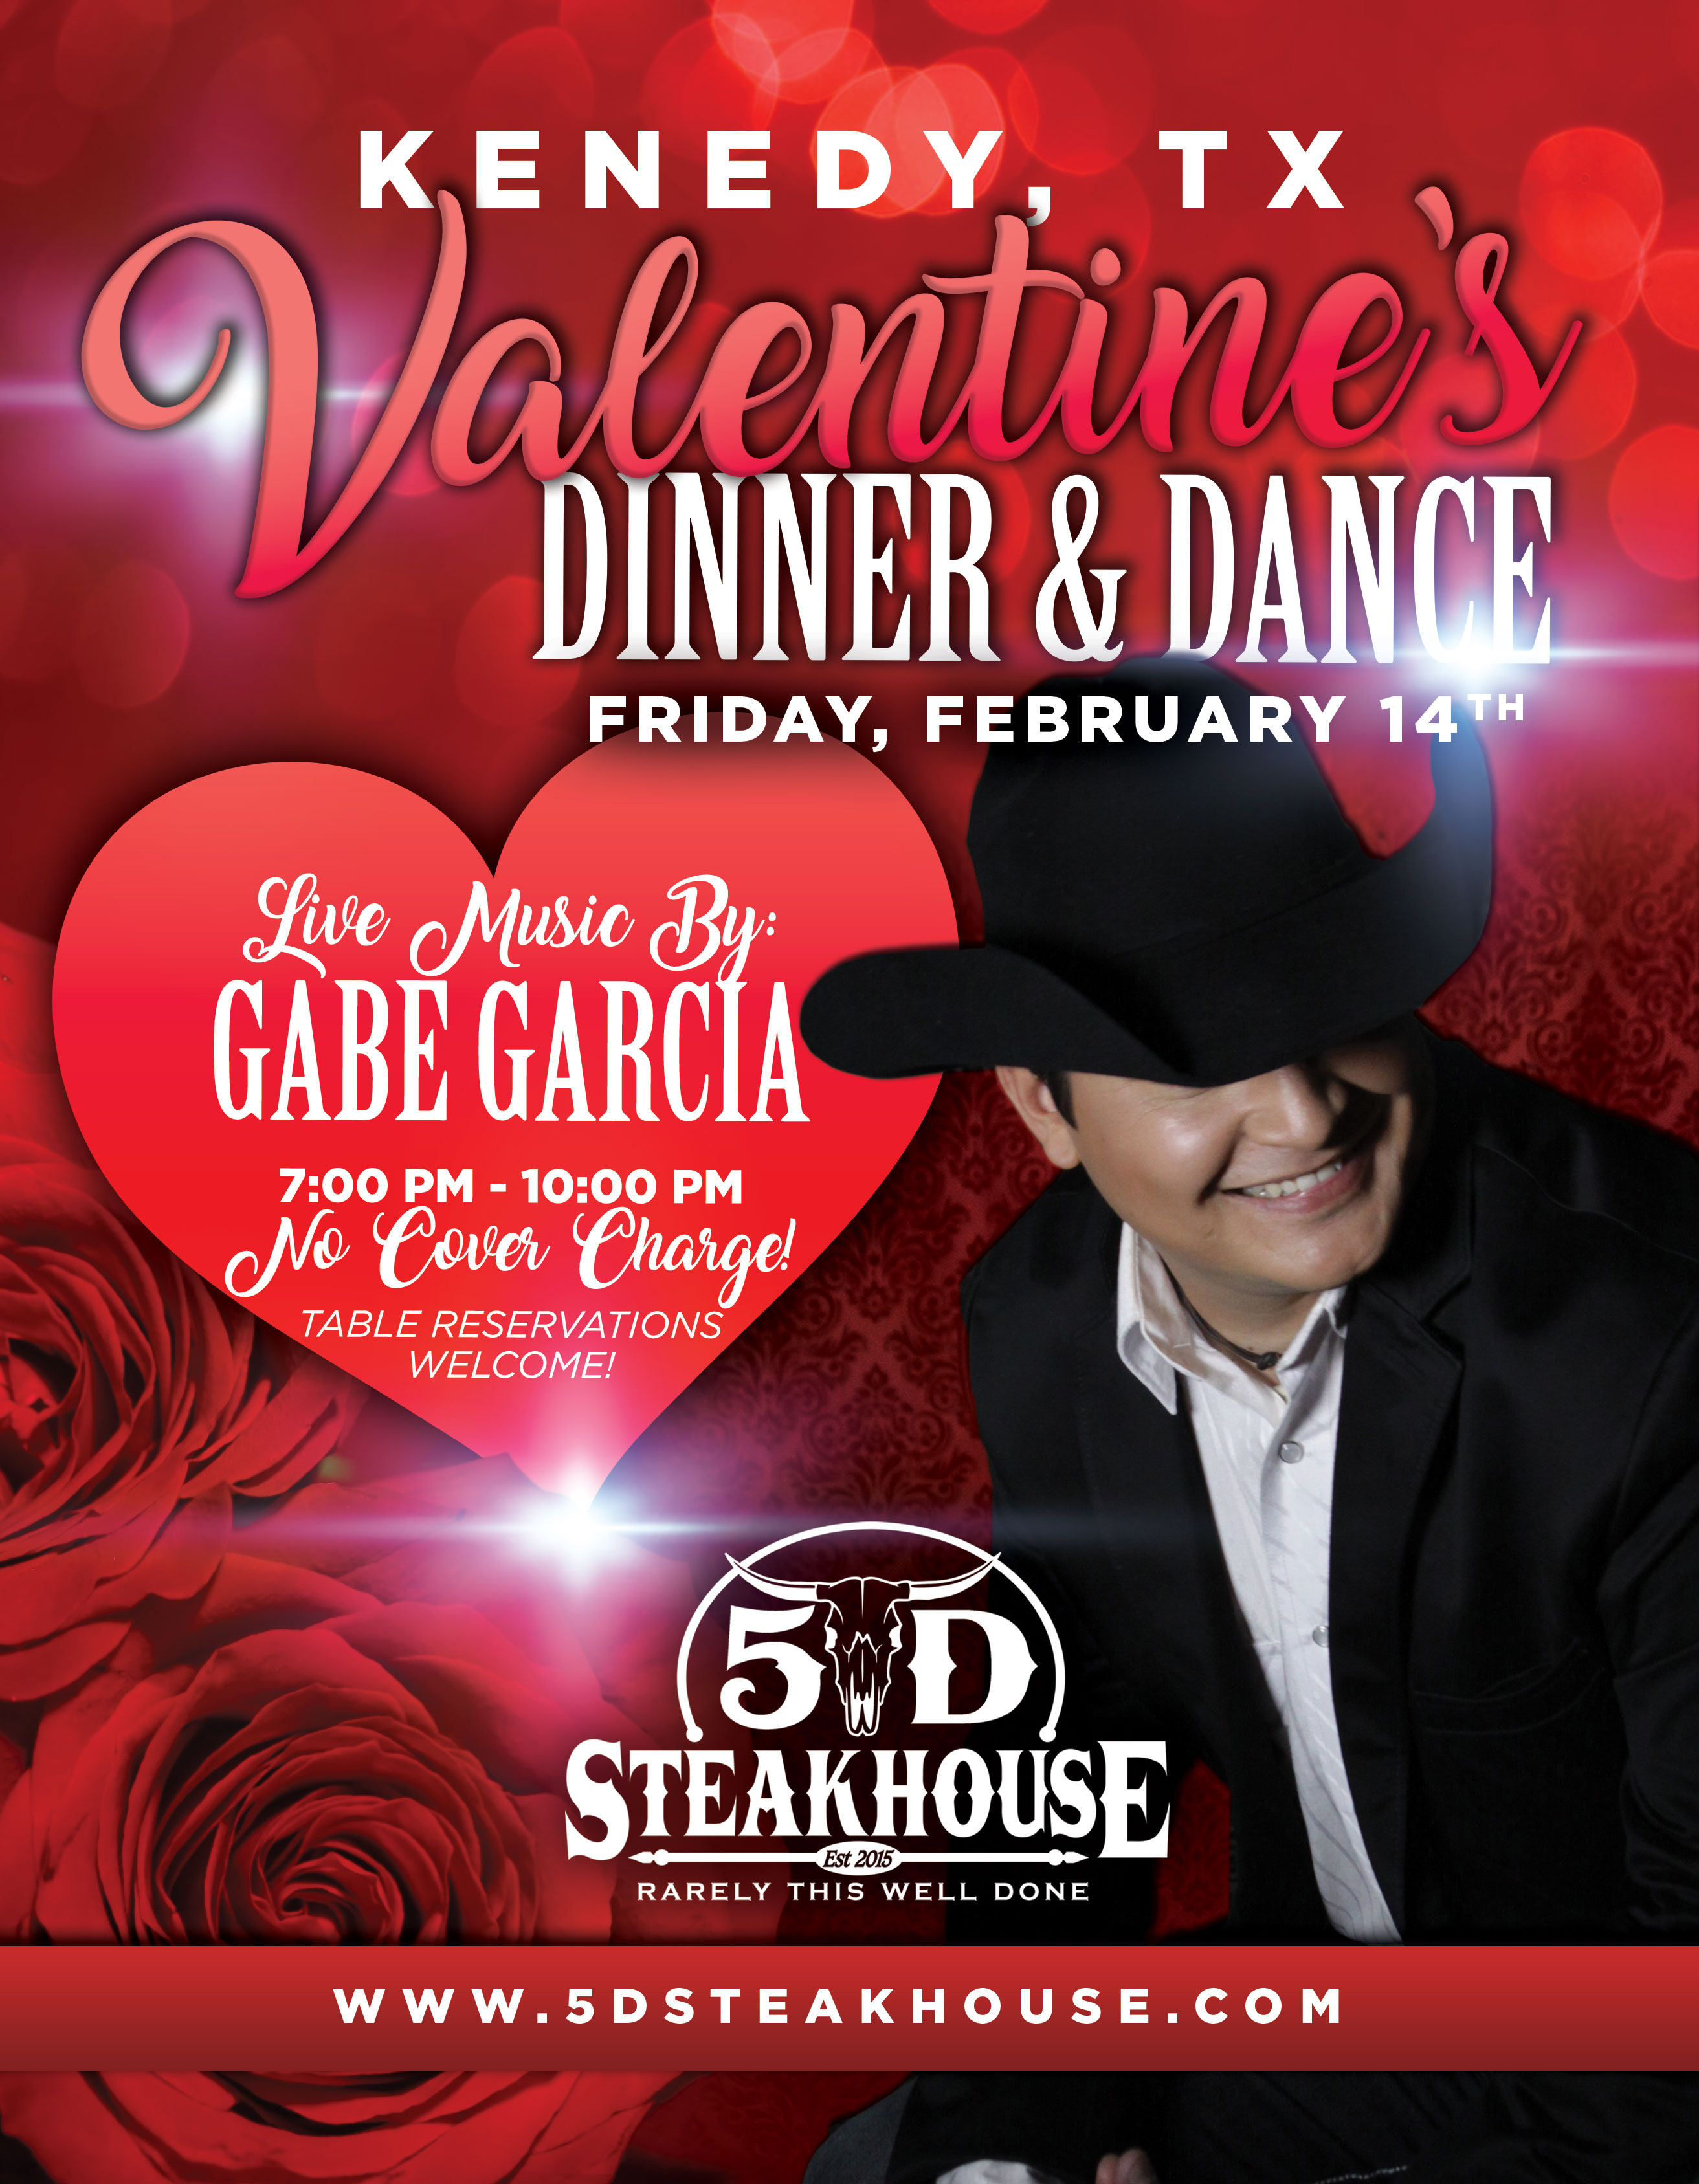 valentine's dinner & dance friday, february 14th at the kenedy location. live music by gabe garcia from 7 PM to 10 PM, no cover charge! table reservations welcome.